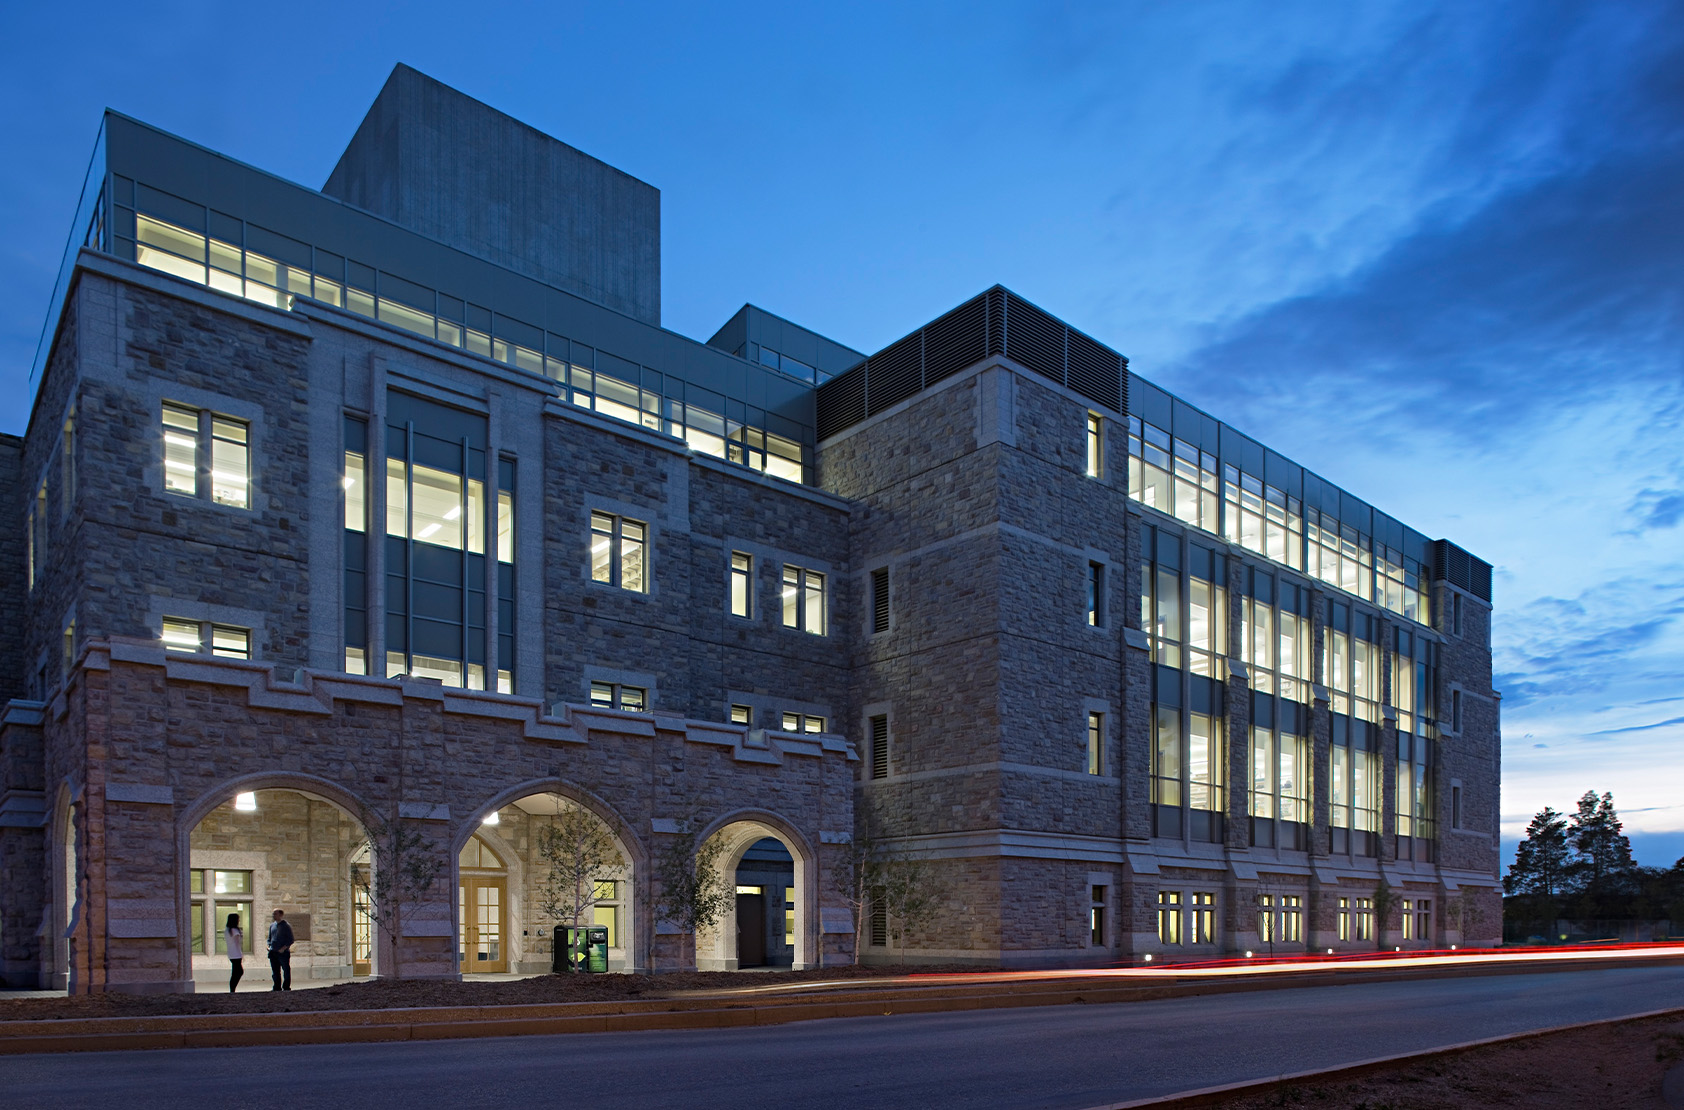 University of Saskatchewan - Academic Health Sciences Centre